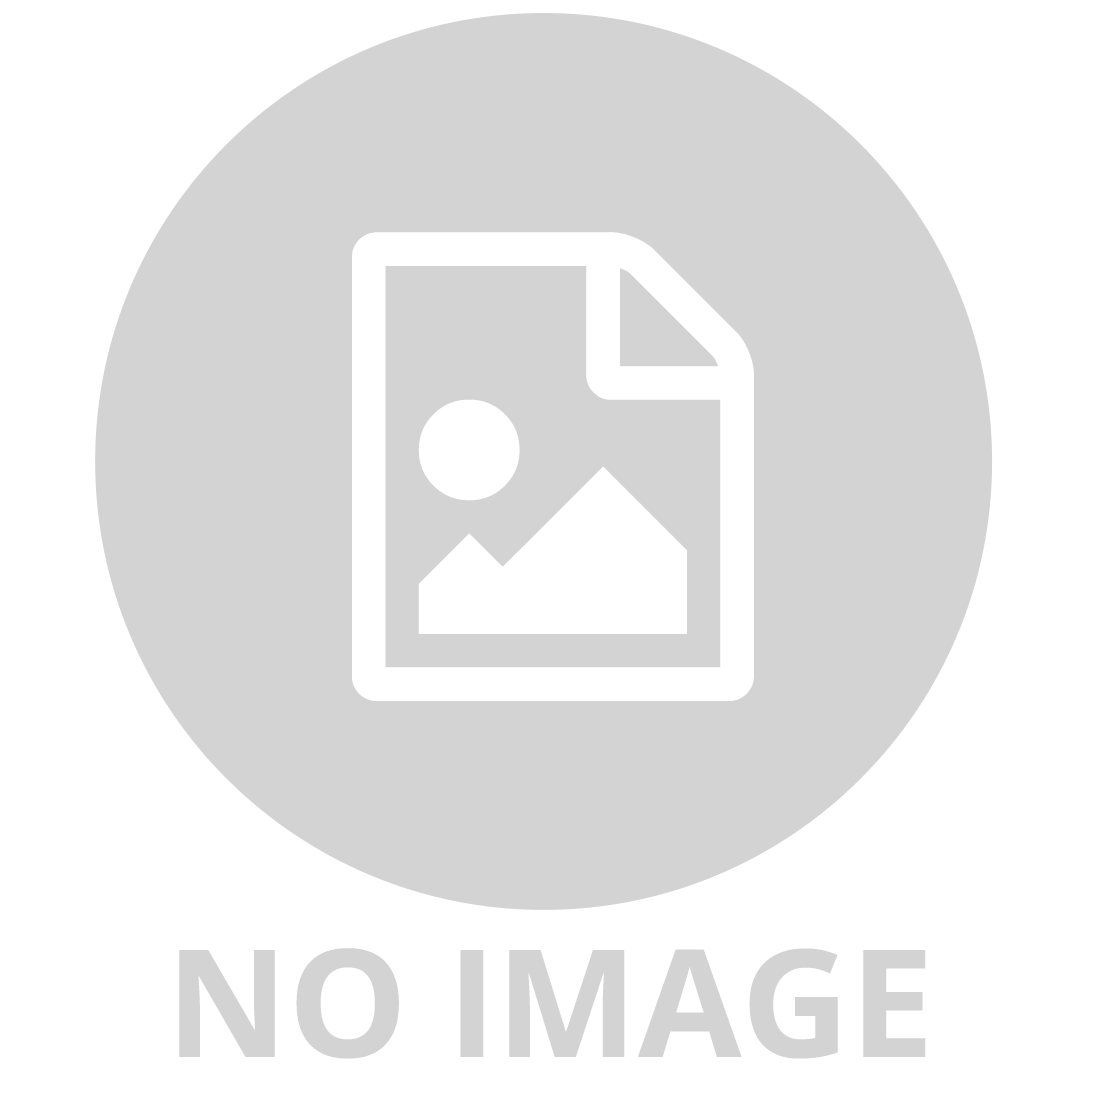 OUR GENERATION WRAPPED WITH A BOW OUTFIT